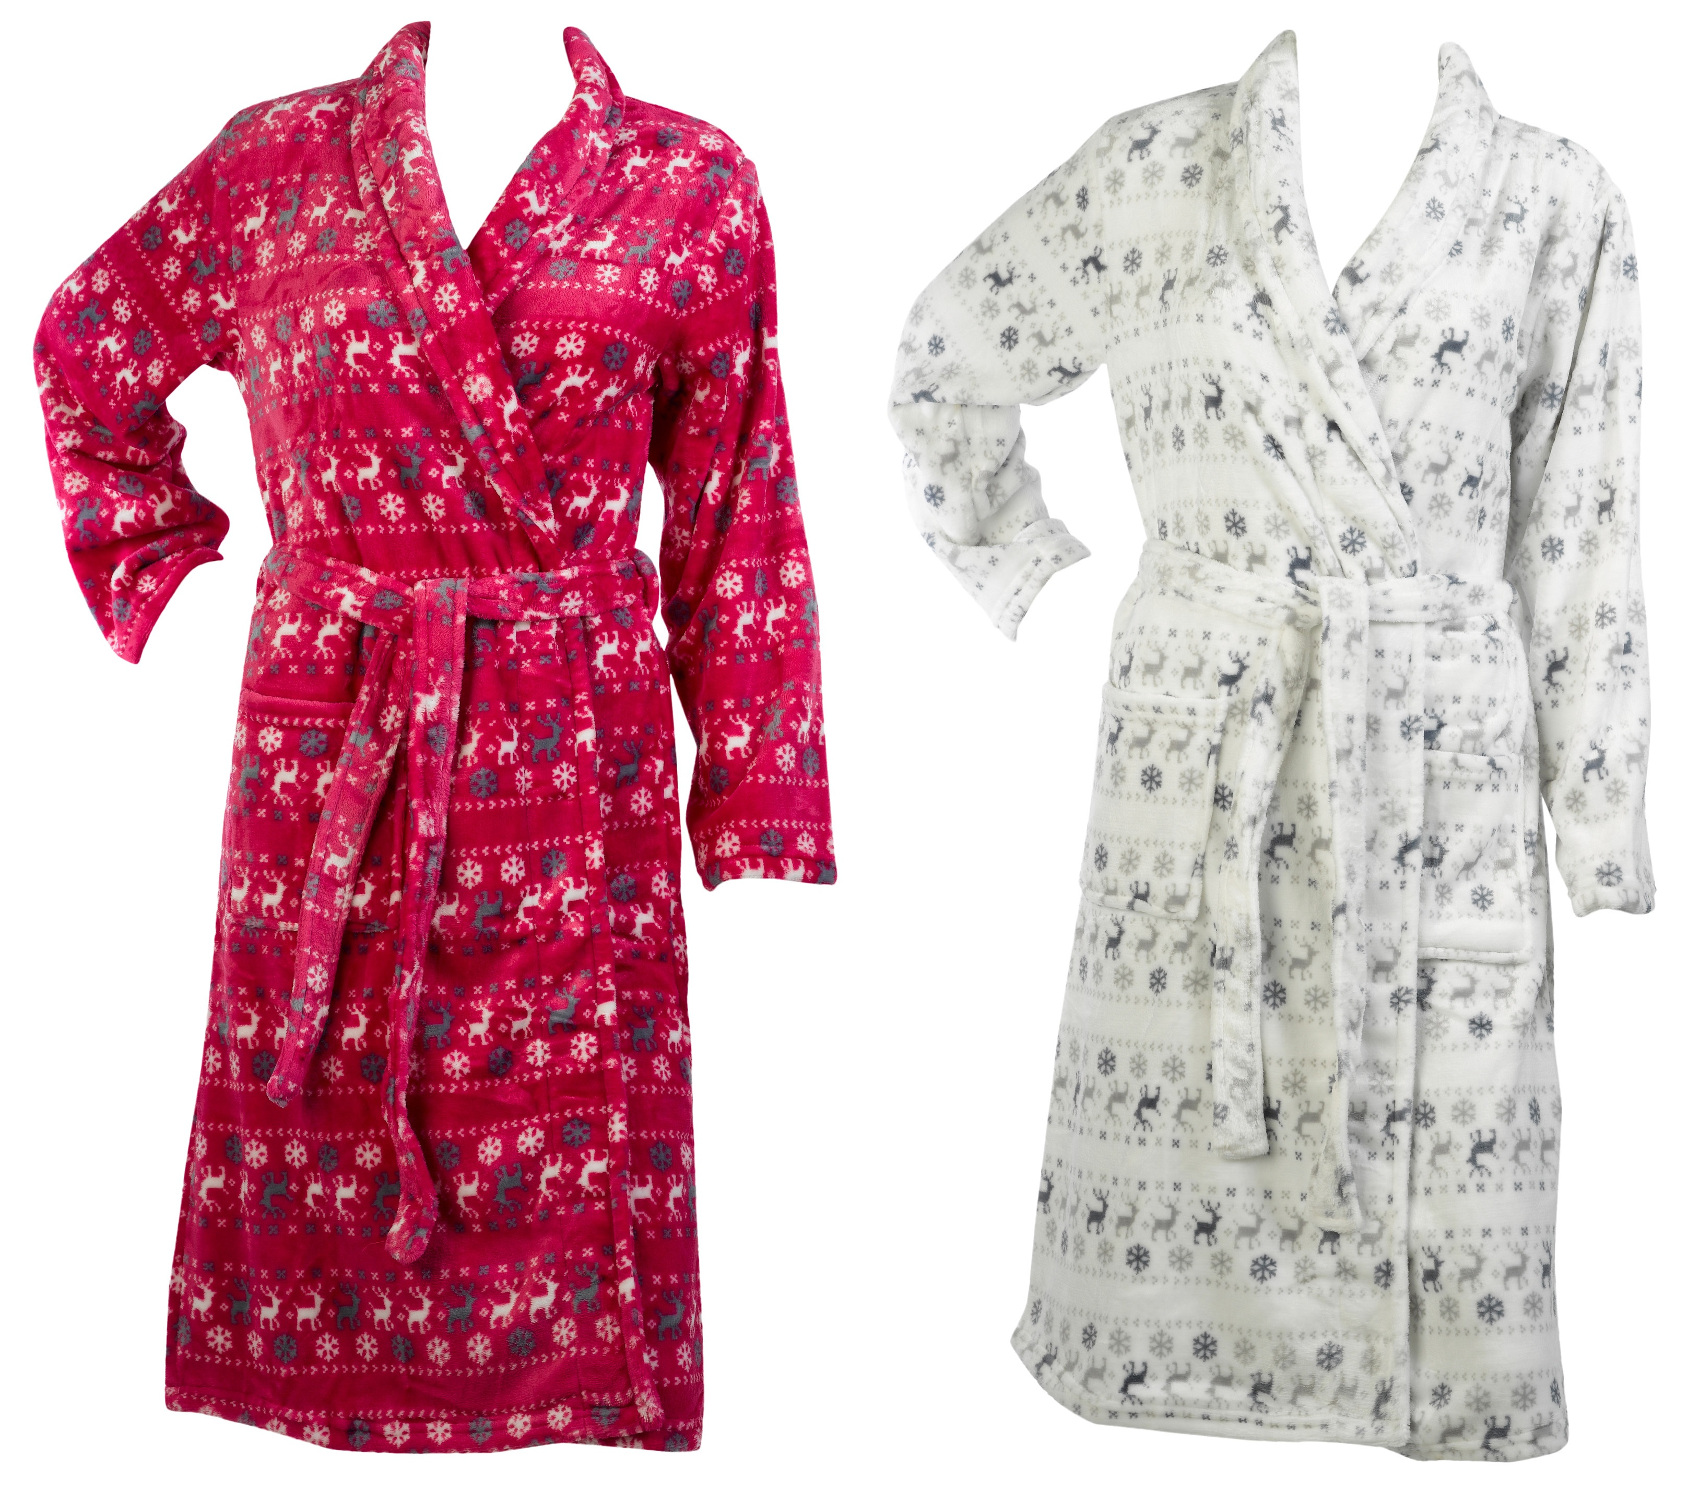 dressing gown pattern instructions